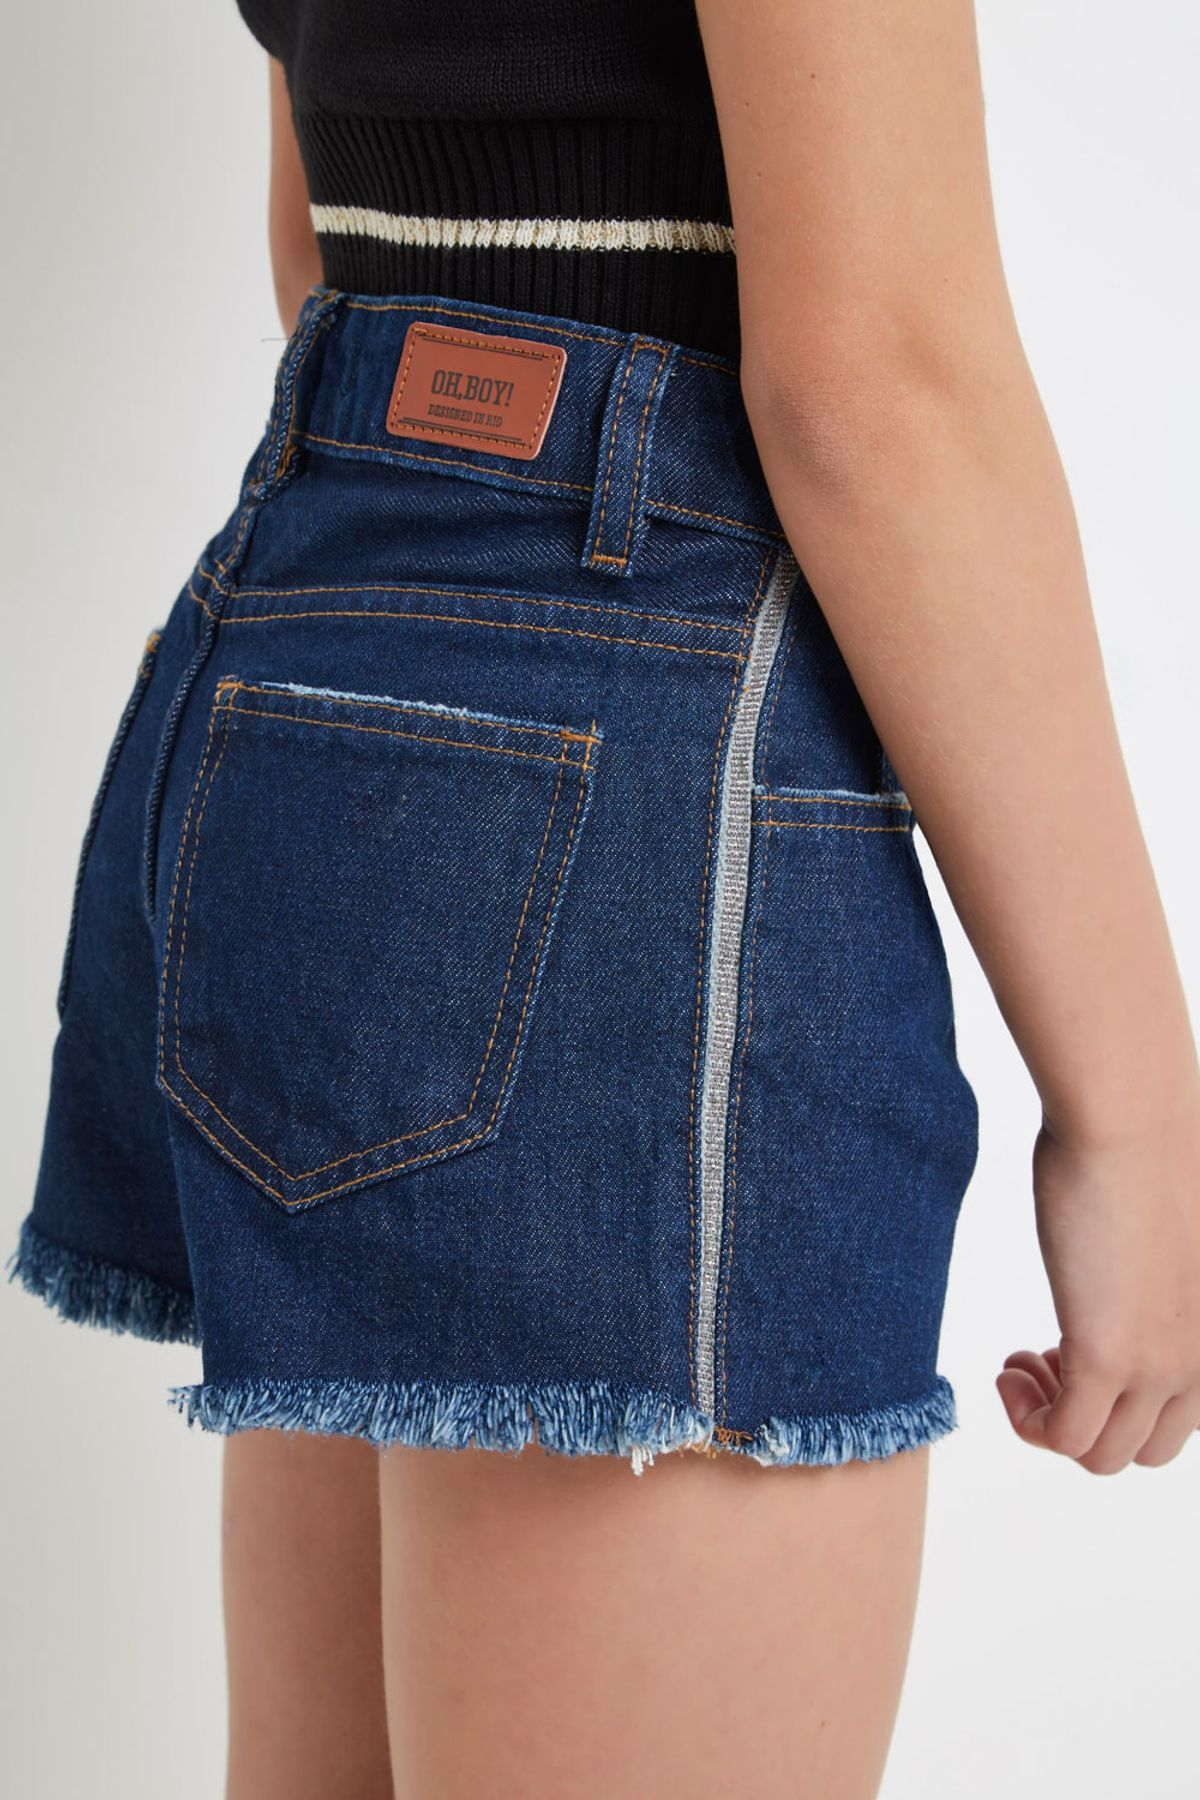 SHORT-JEANS-FRIDA-DETALHE-LATERAL-040108750057-OH-BOY